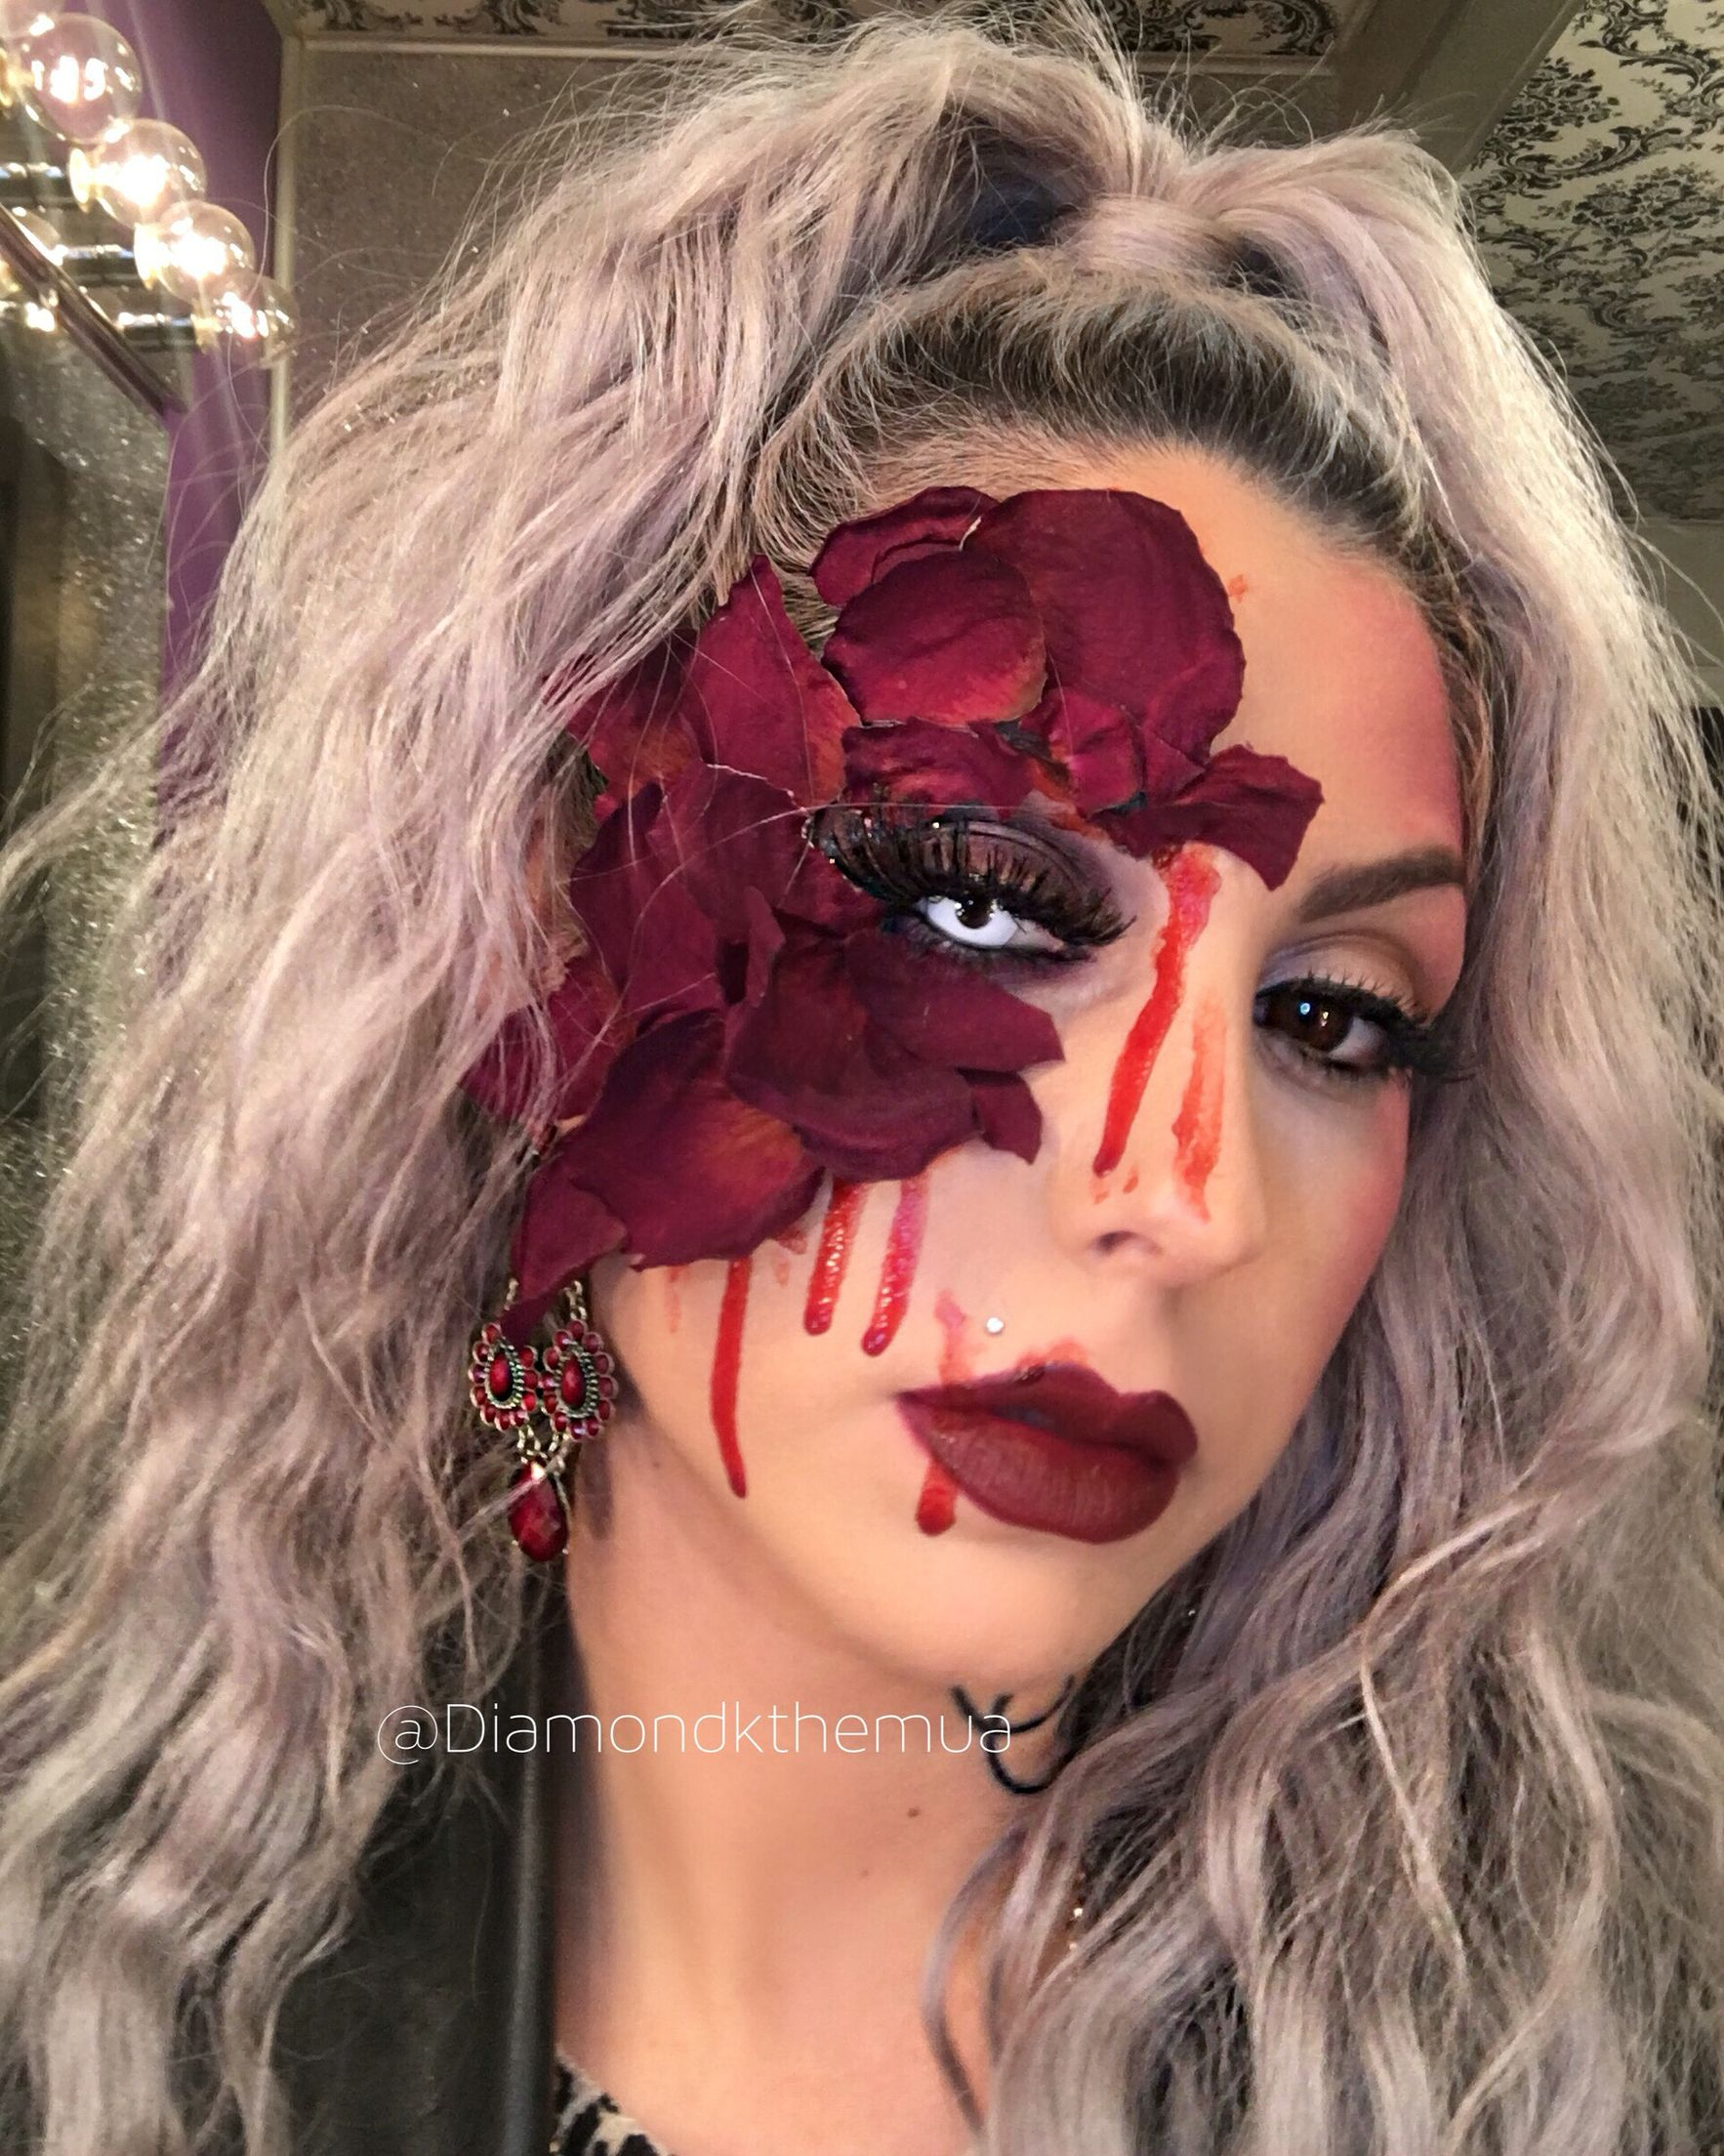 lovesick Valentine's Day inspired avantgarde makeup with